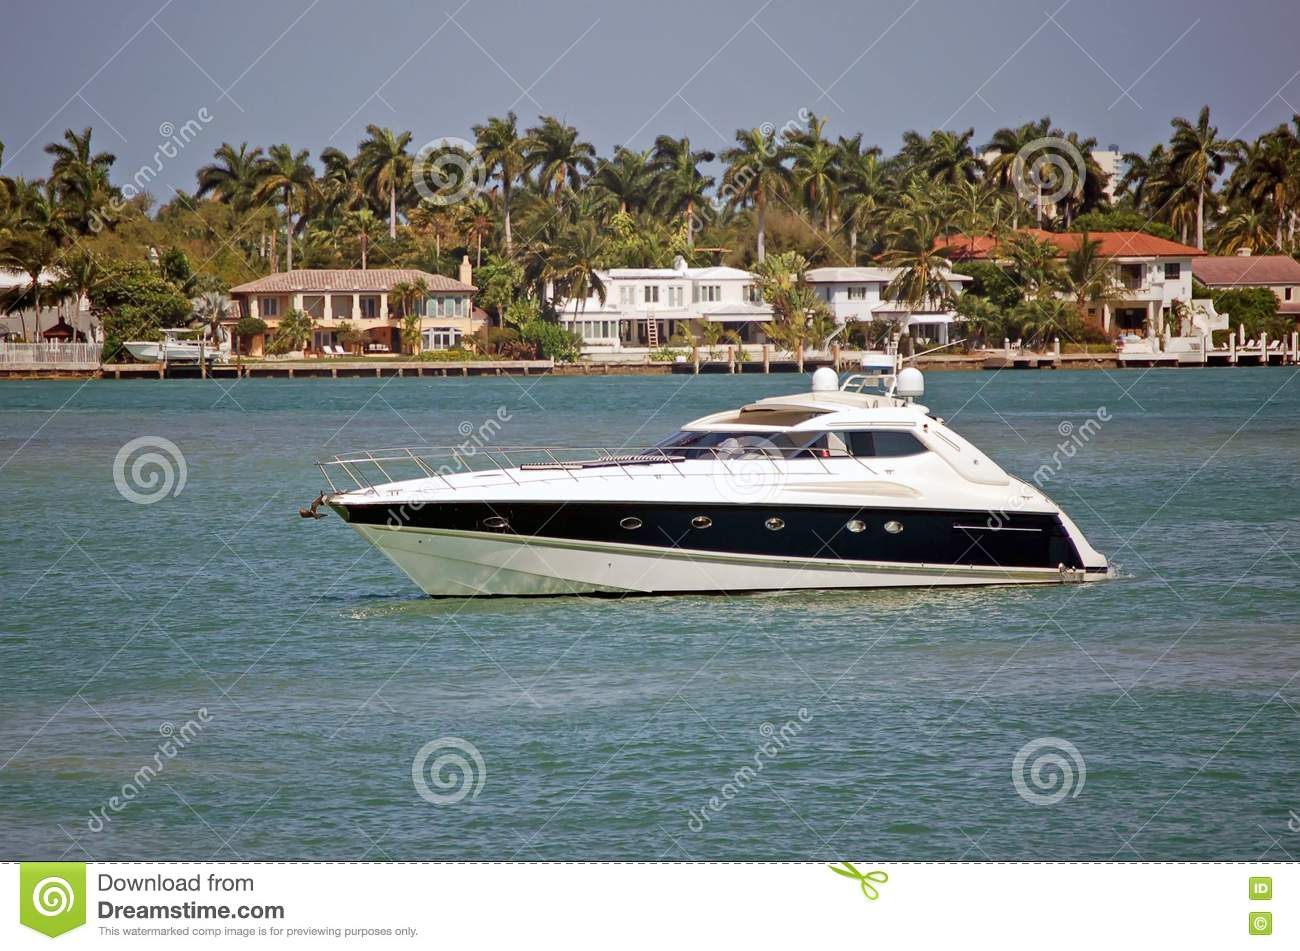 Luxury fishing boat royalty free stock images image for Luxury fishing boats